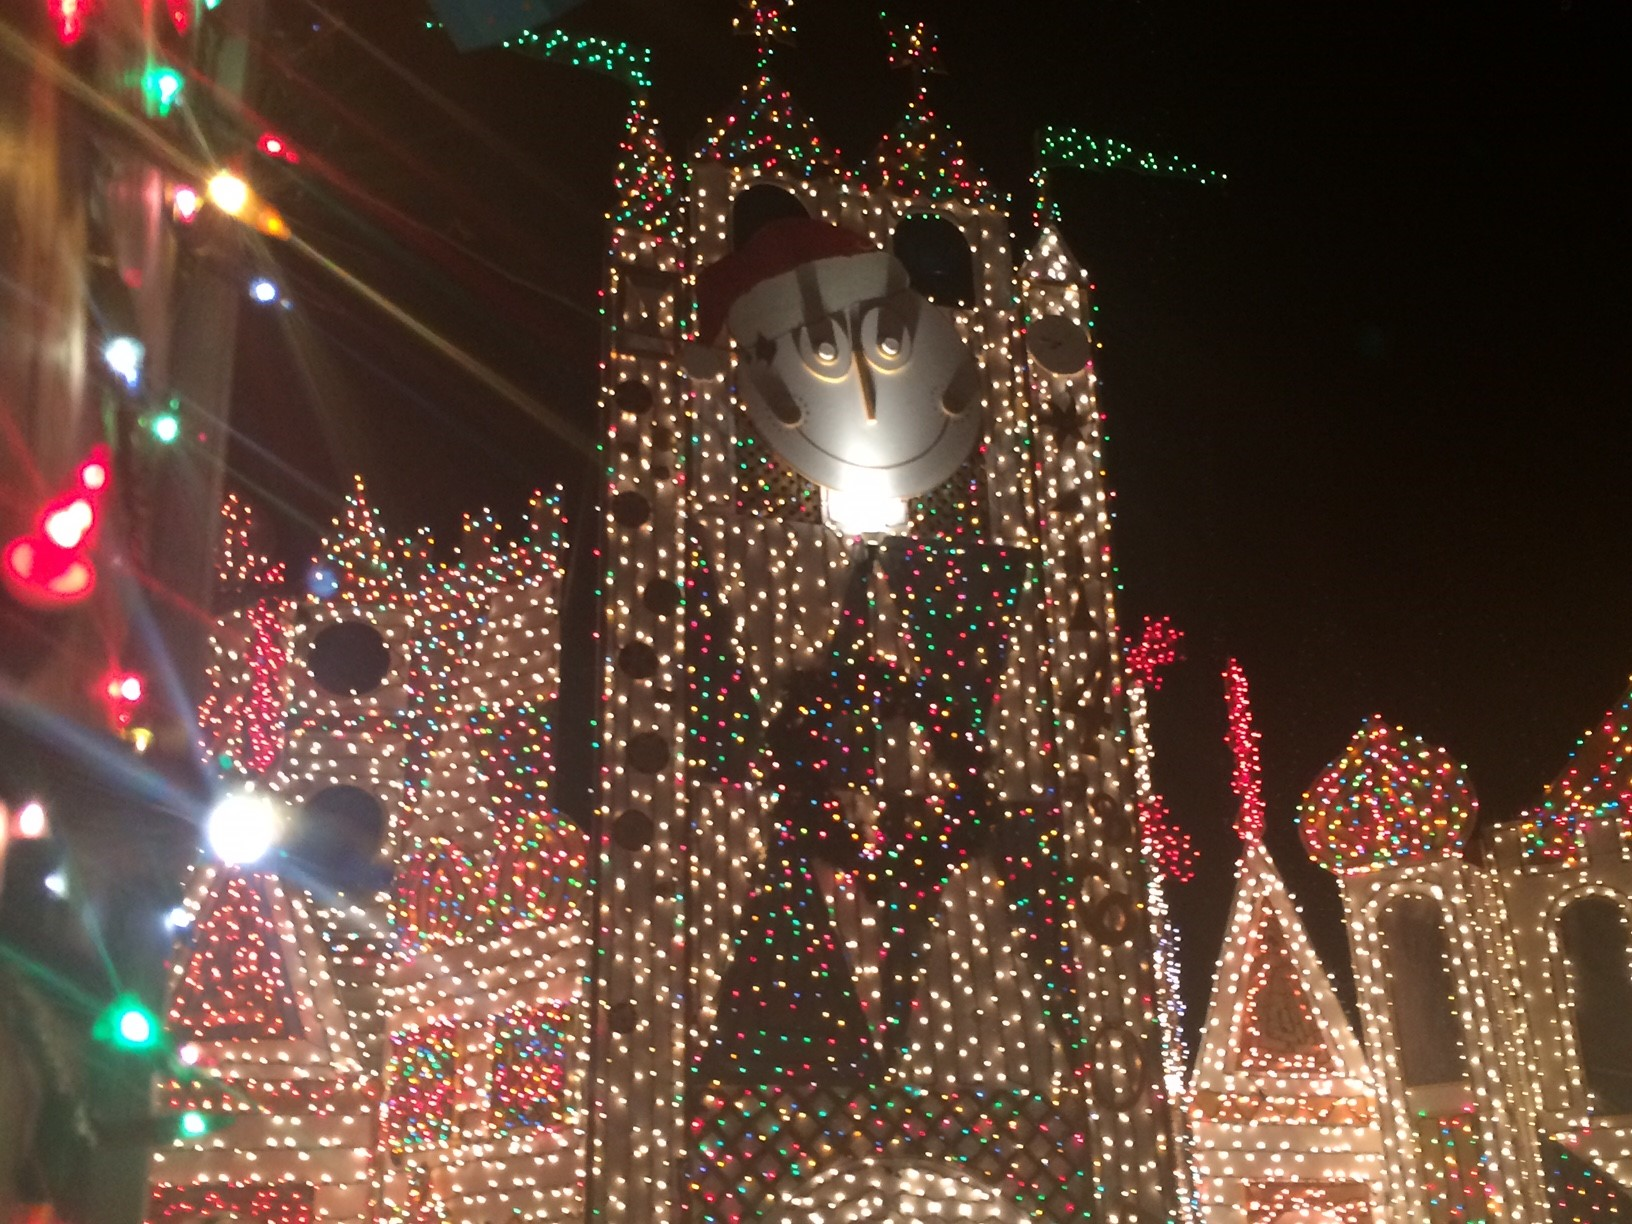 Famous Christmas light castle in St. George up and lifting holiday spirits (Photo: DJ Bolerjack)